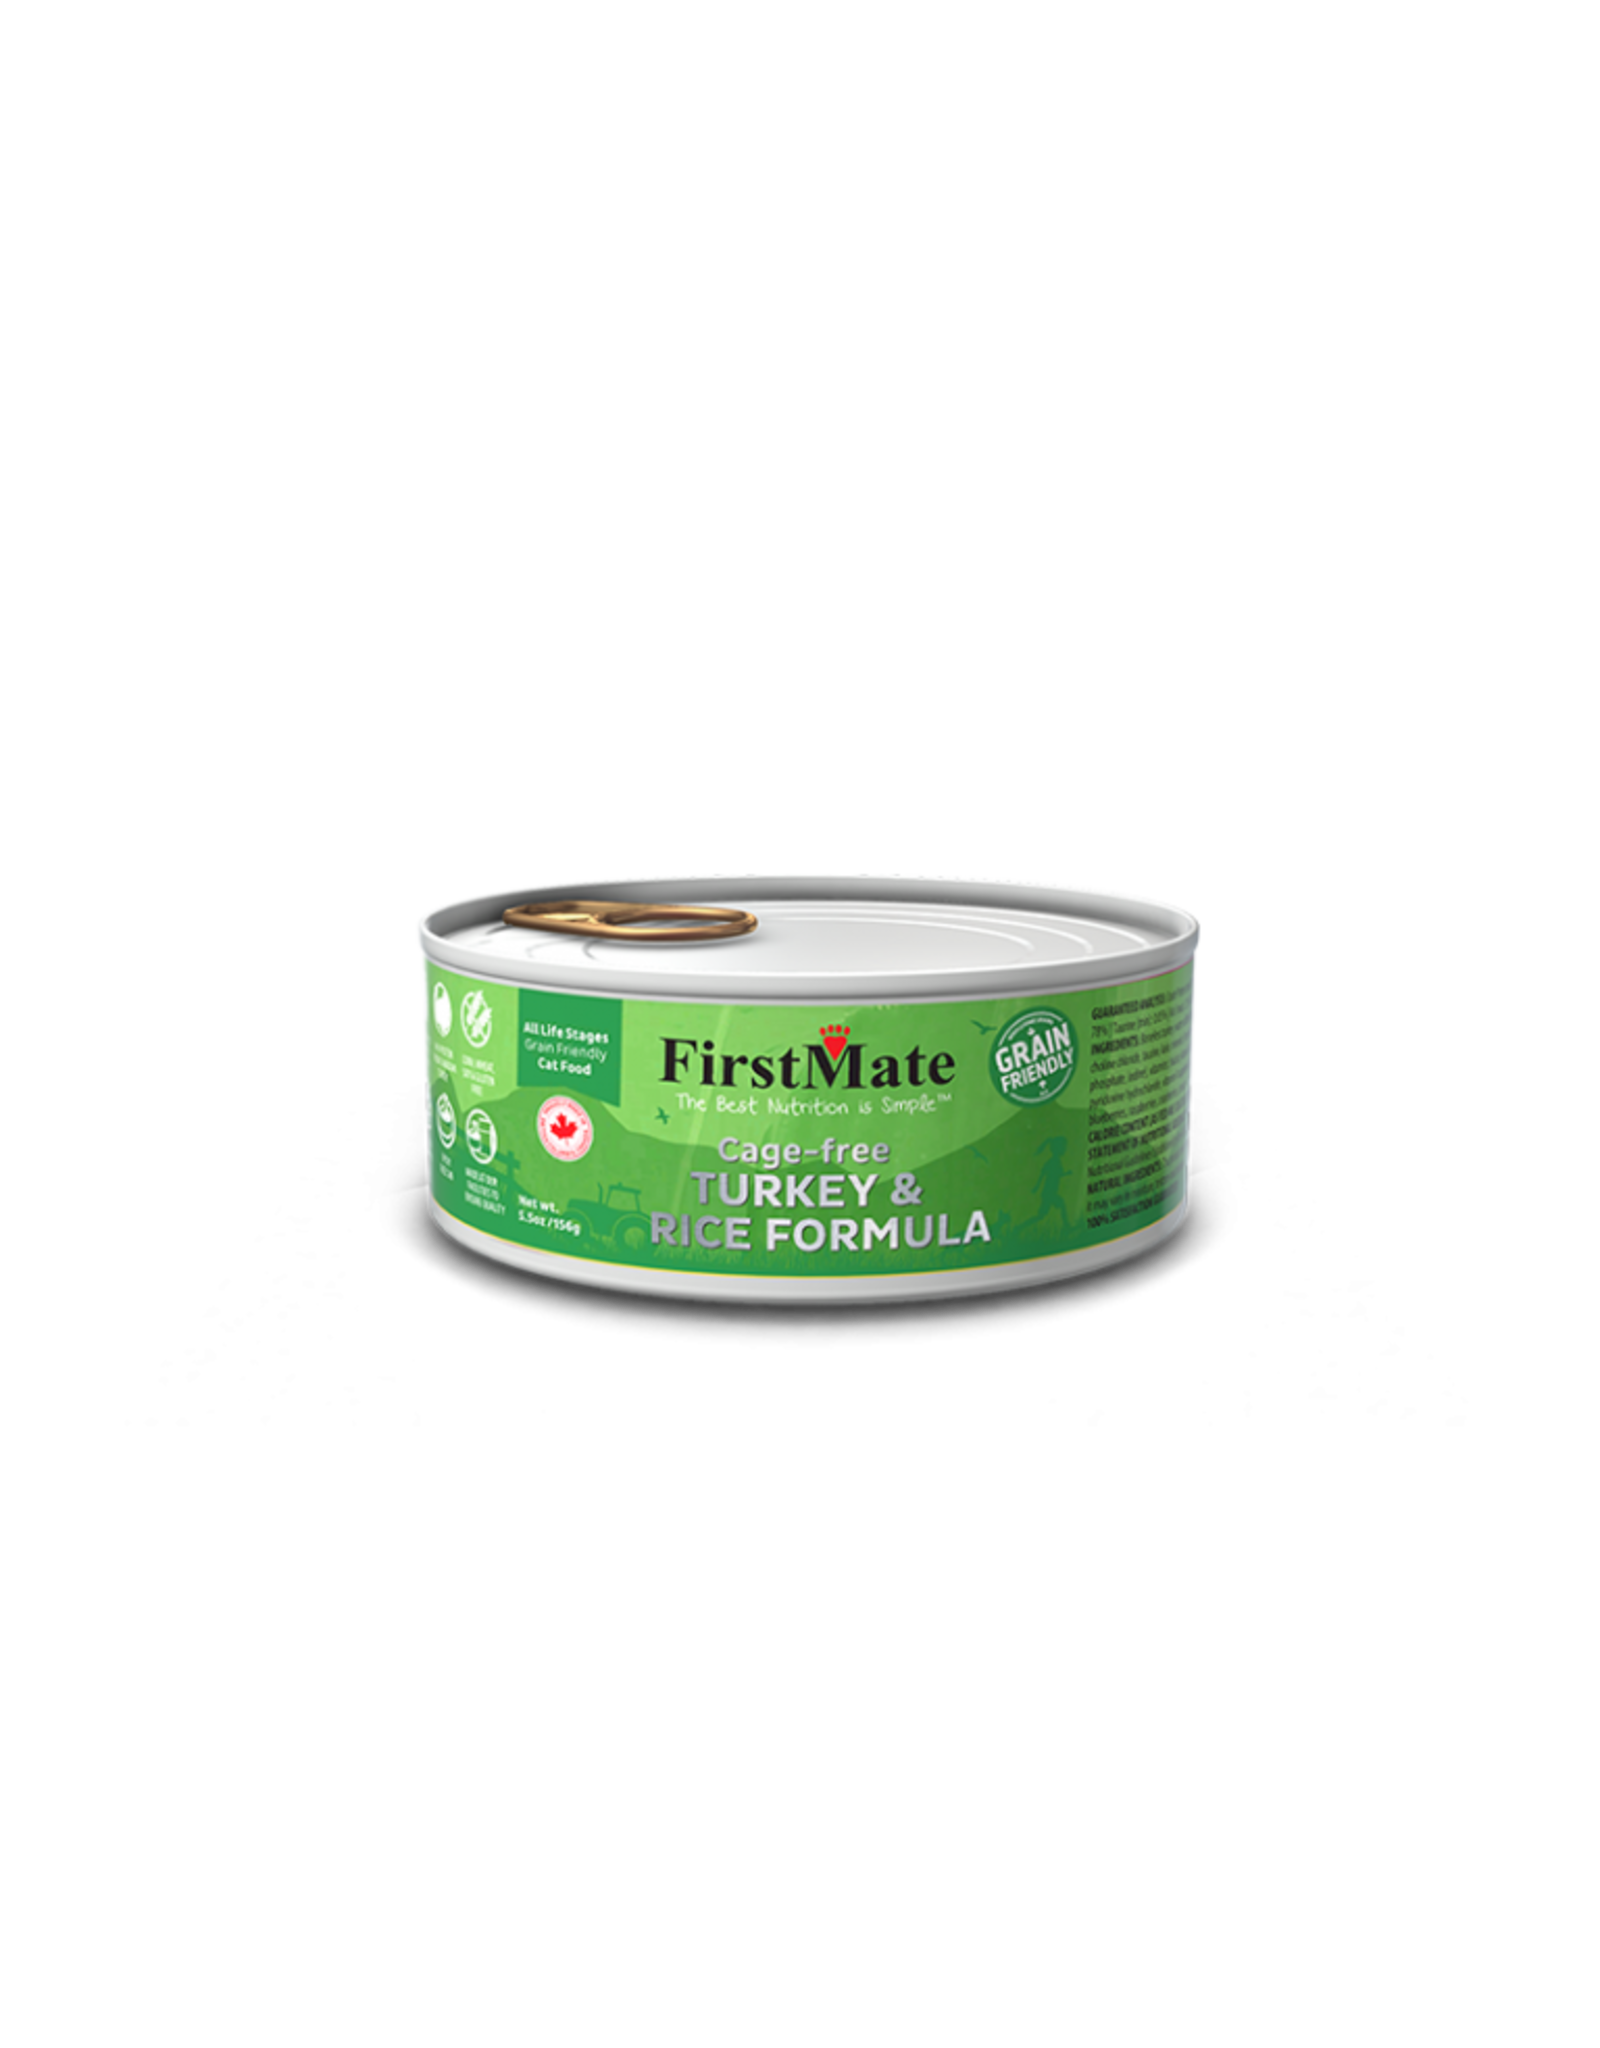 FirstMate FirstMate GrainFriendly CAT CAN Turkey w/Rice 156g